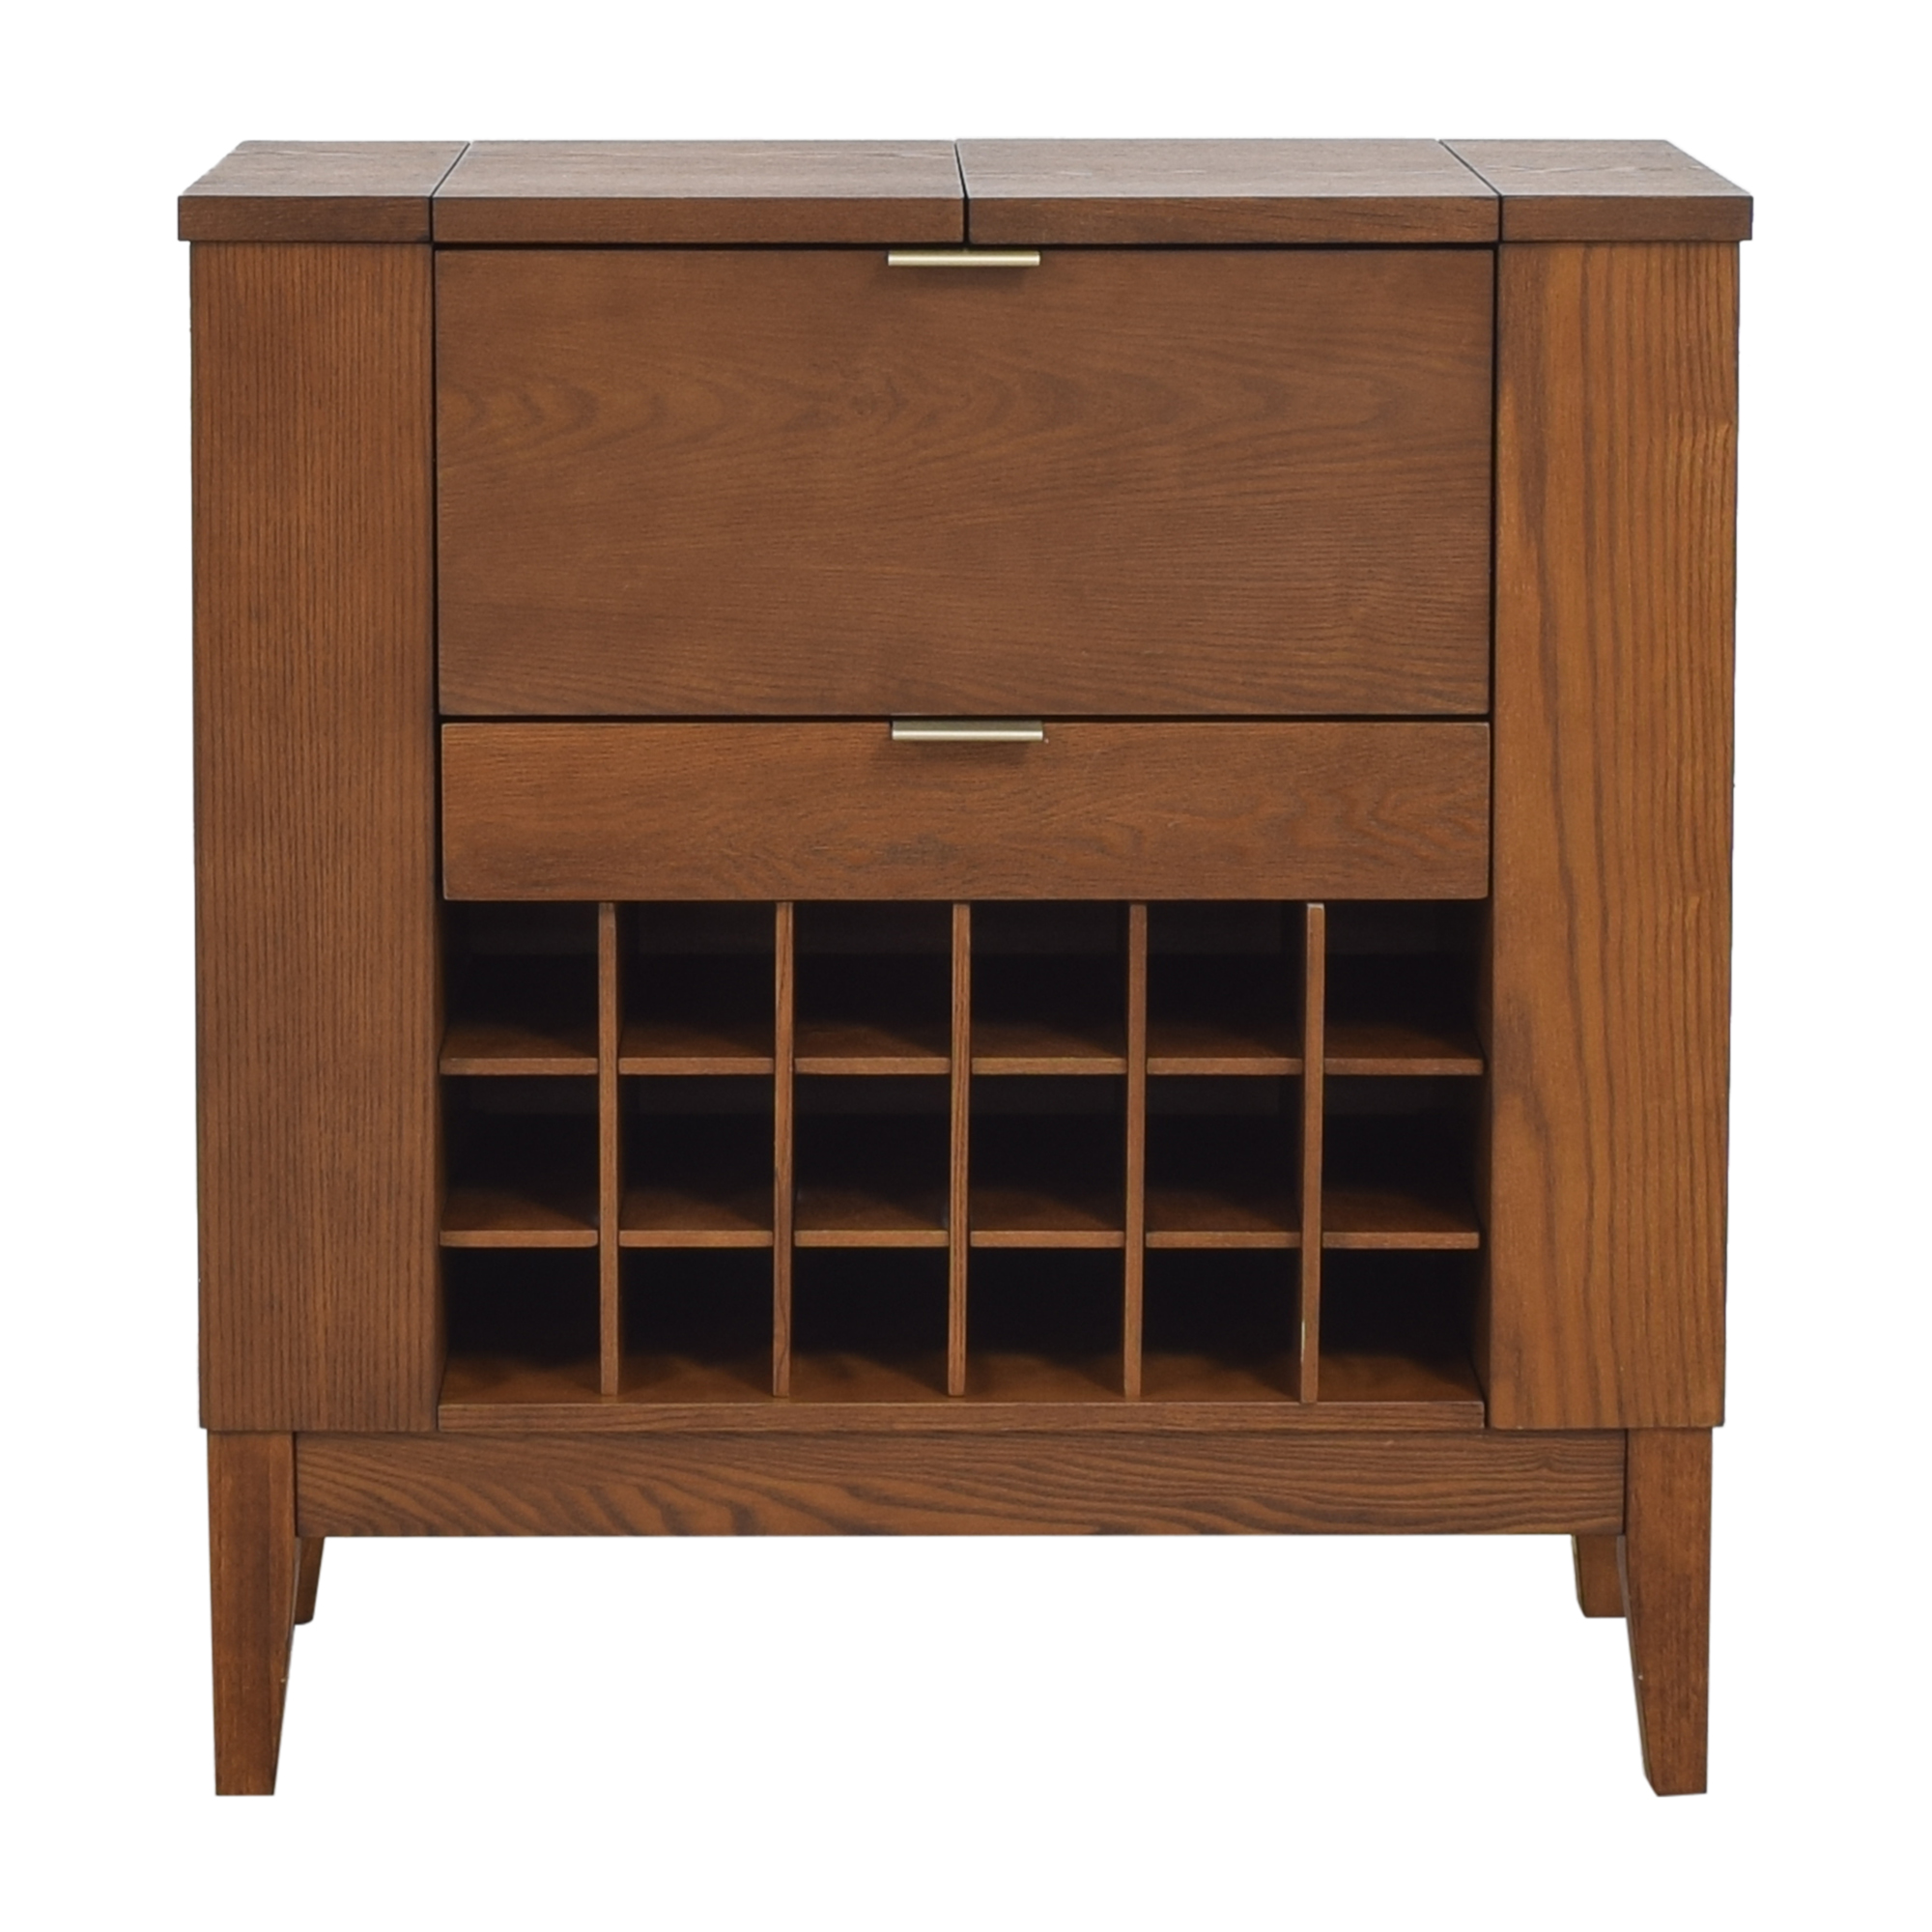 buy Crate & Barrel Parker Spirits Bourbon Cabinet Crate & Barrel Cabinets & Sideboards